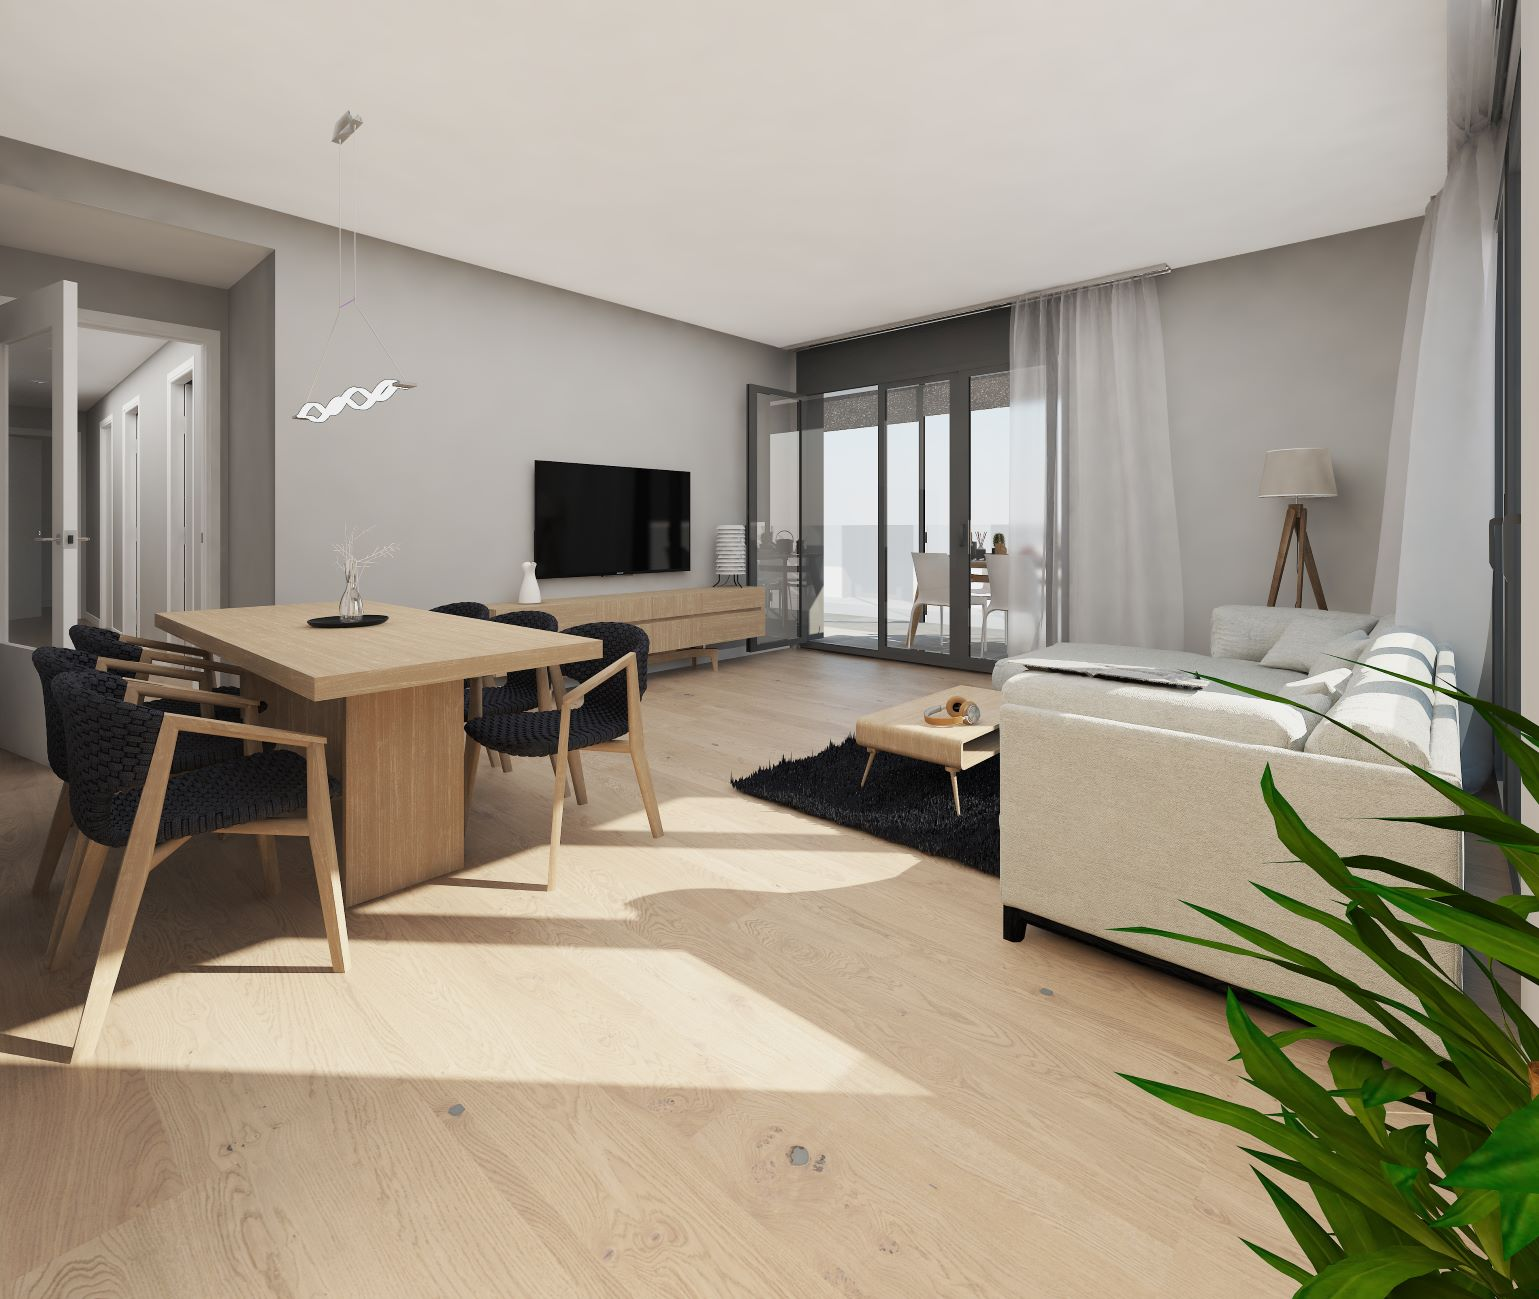 Apartment in Barcelona - poble nou. Private parking, Private swimming pool, Terrace.3 bedrooms. For sale: 493.000 €.